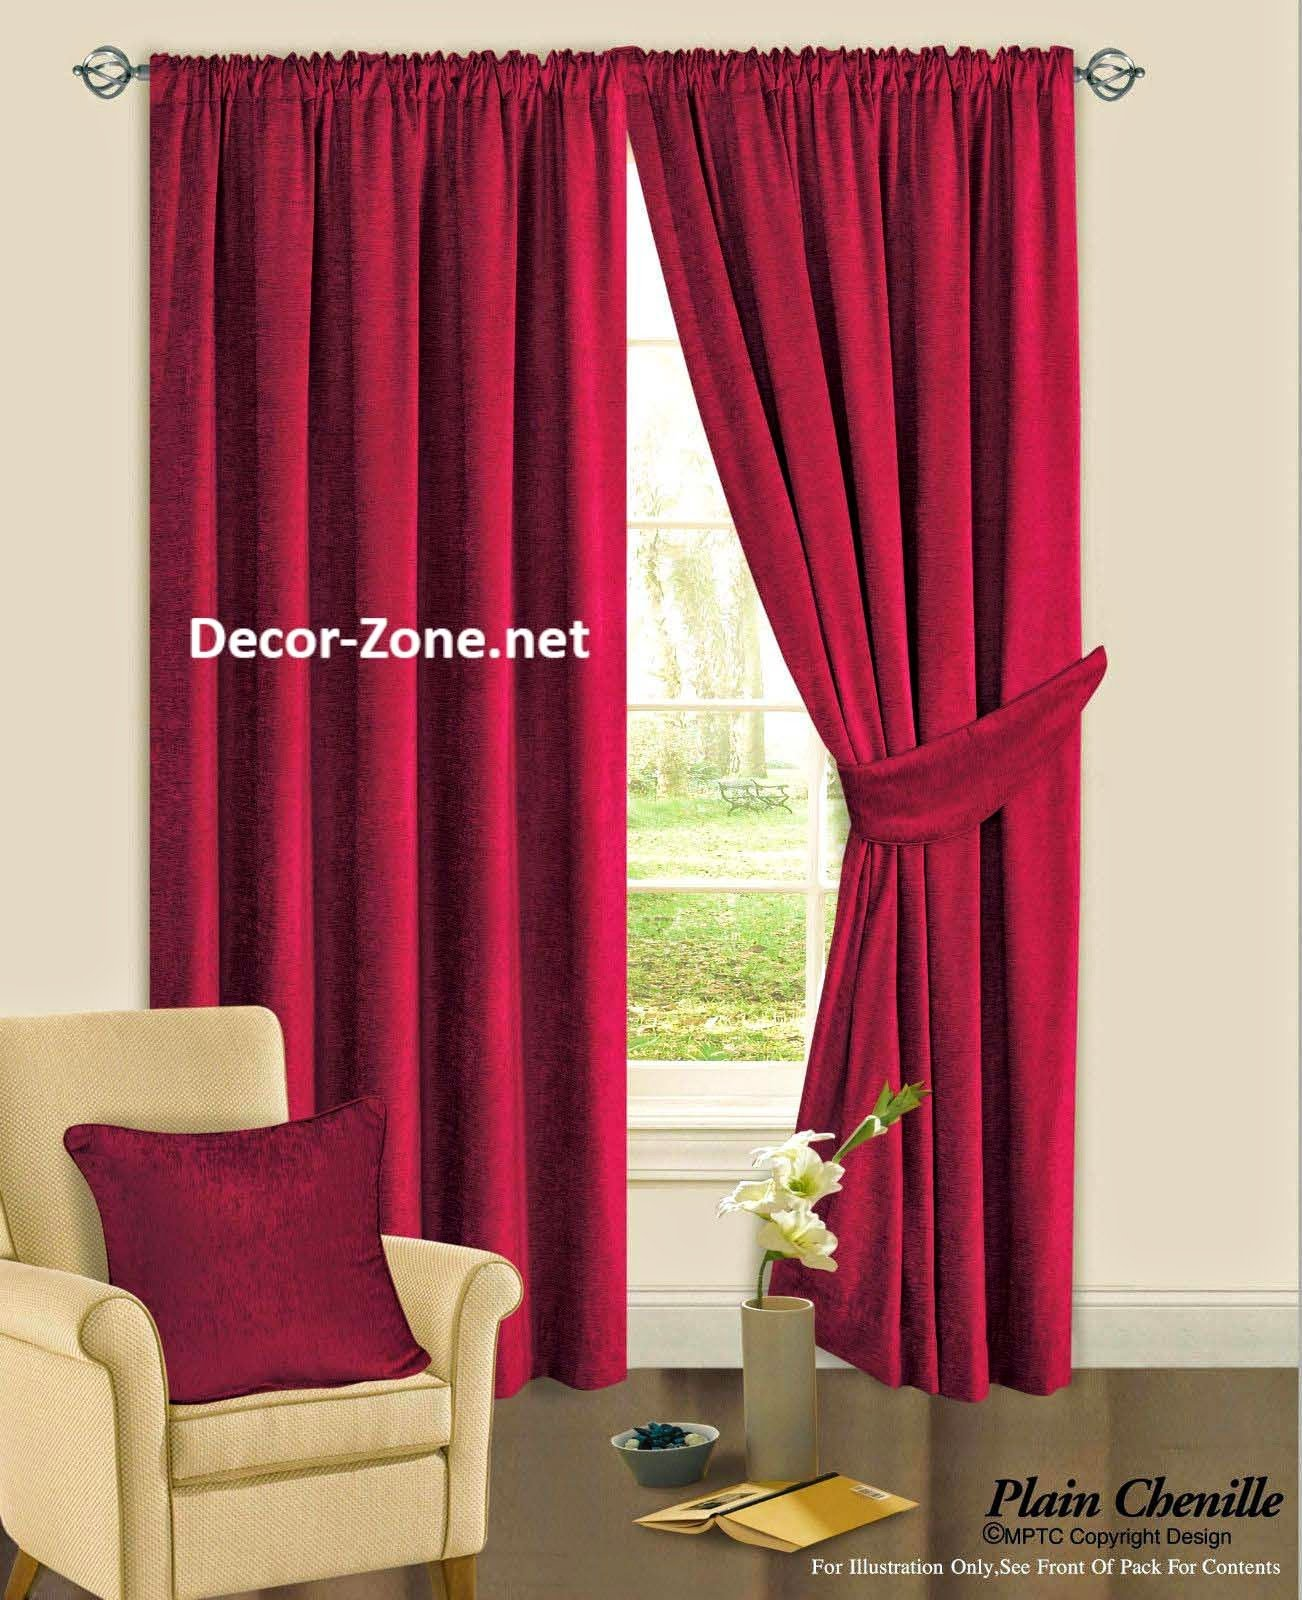 Best Bedroom Curtain 25 Ideas And Tips To Choose Curtains For With Pictures